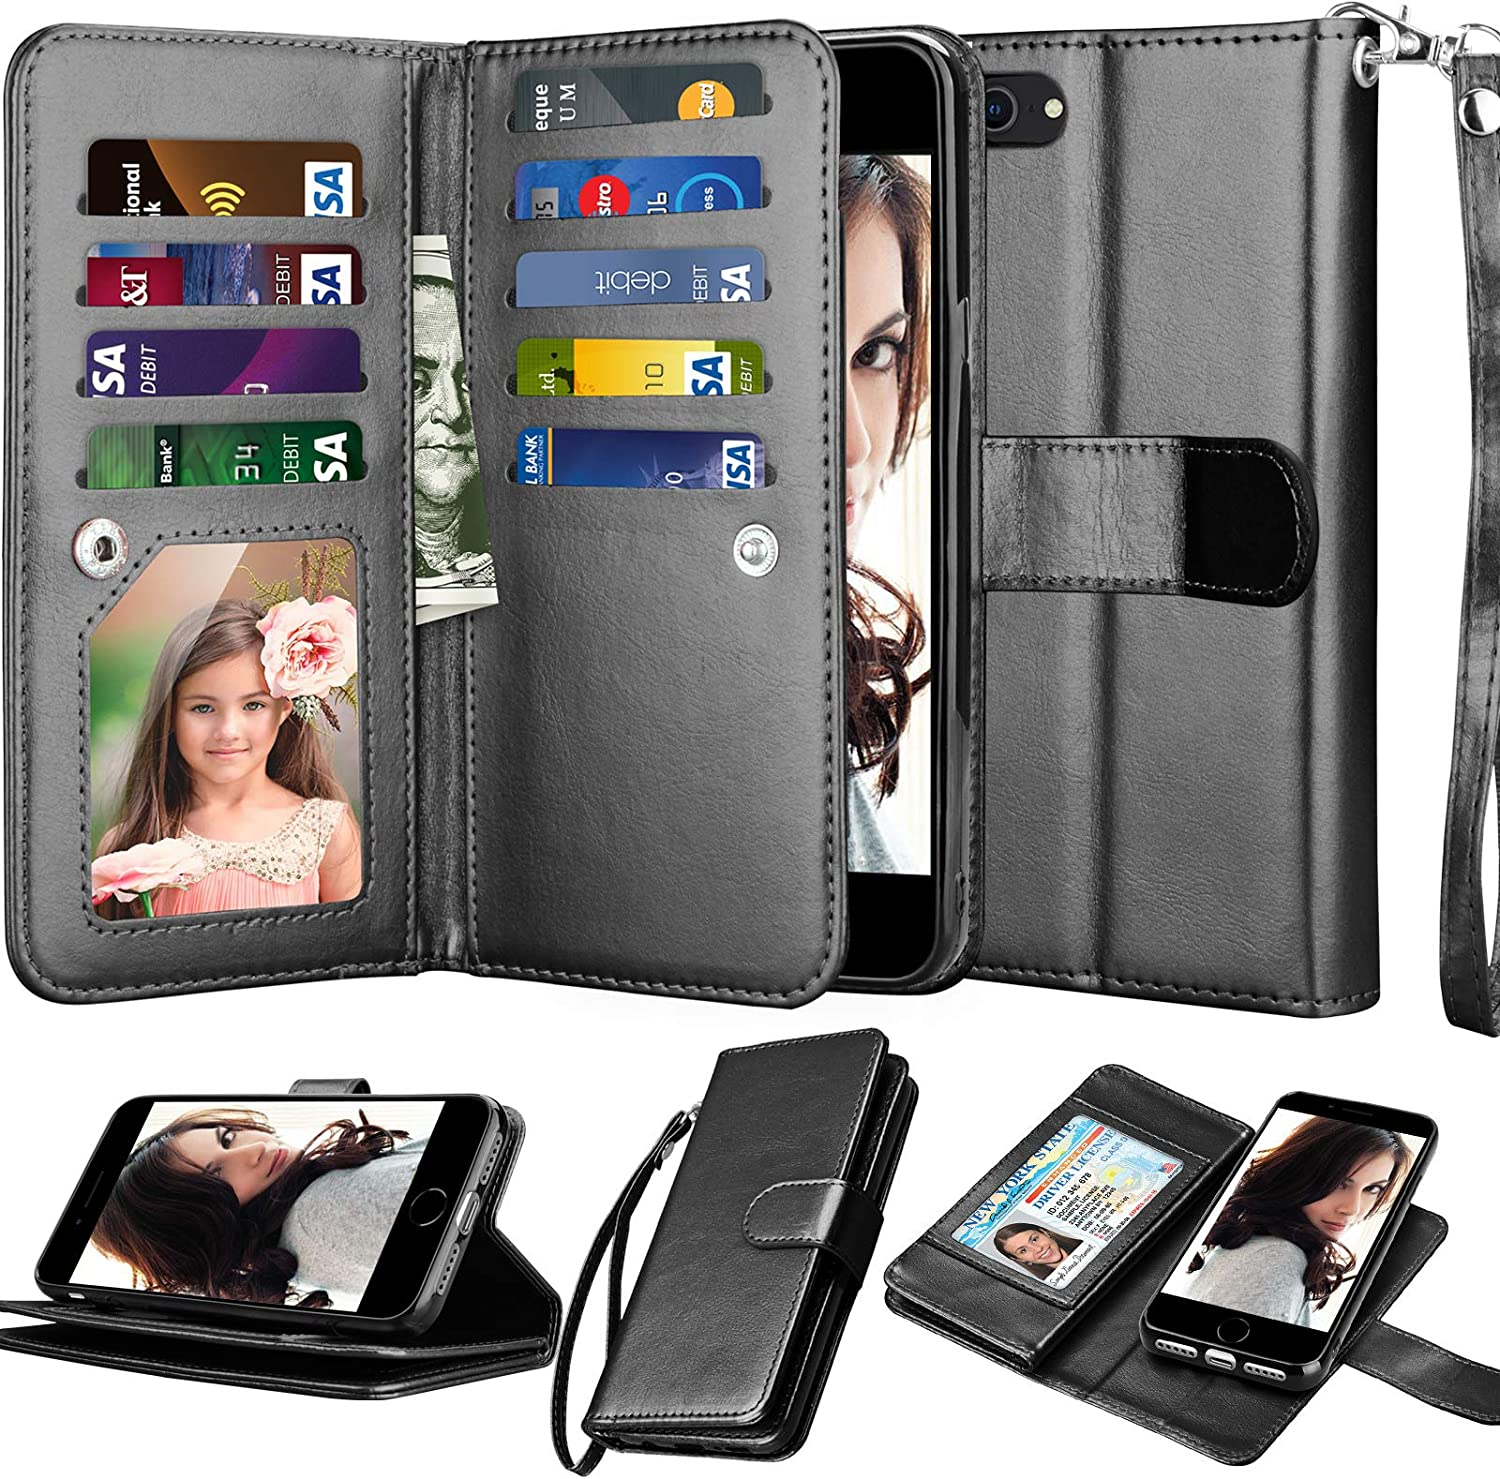 Njjex Wallet Case for iPhone SE 2020/SE2, for iPhone 8/iPhone 7 Case, [9 Card Slots] PU Leather Credit Holder Folio Flip [Detachable] Kickstand Lanyard Magnetic Phone Cover for iPhone SE 2nd [Black]